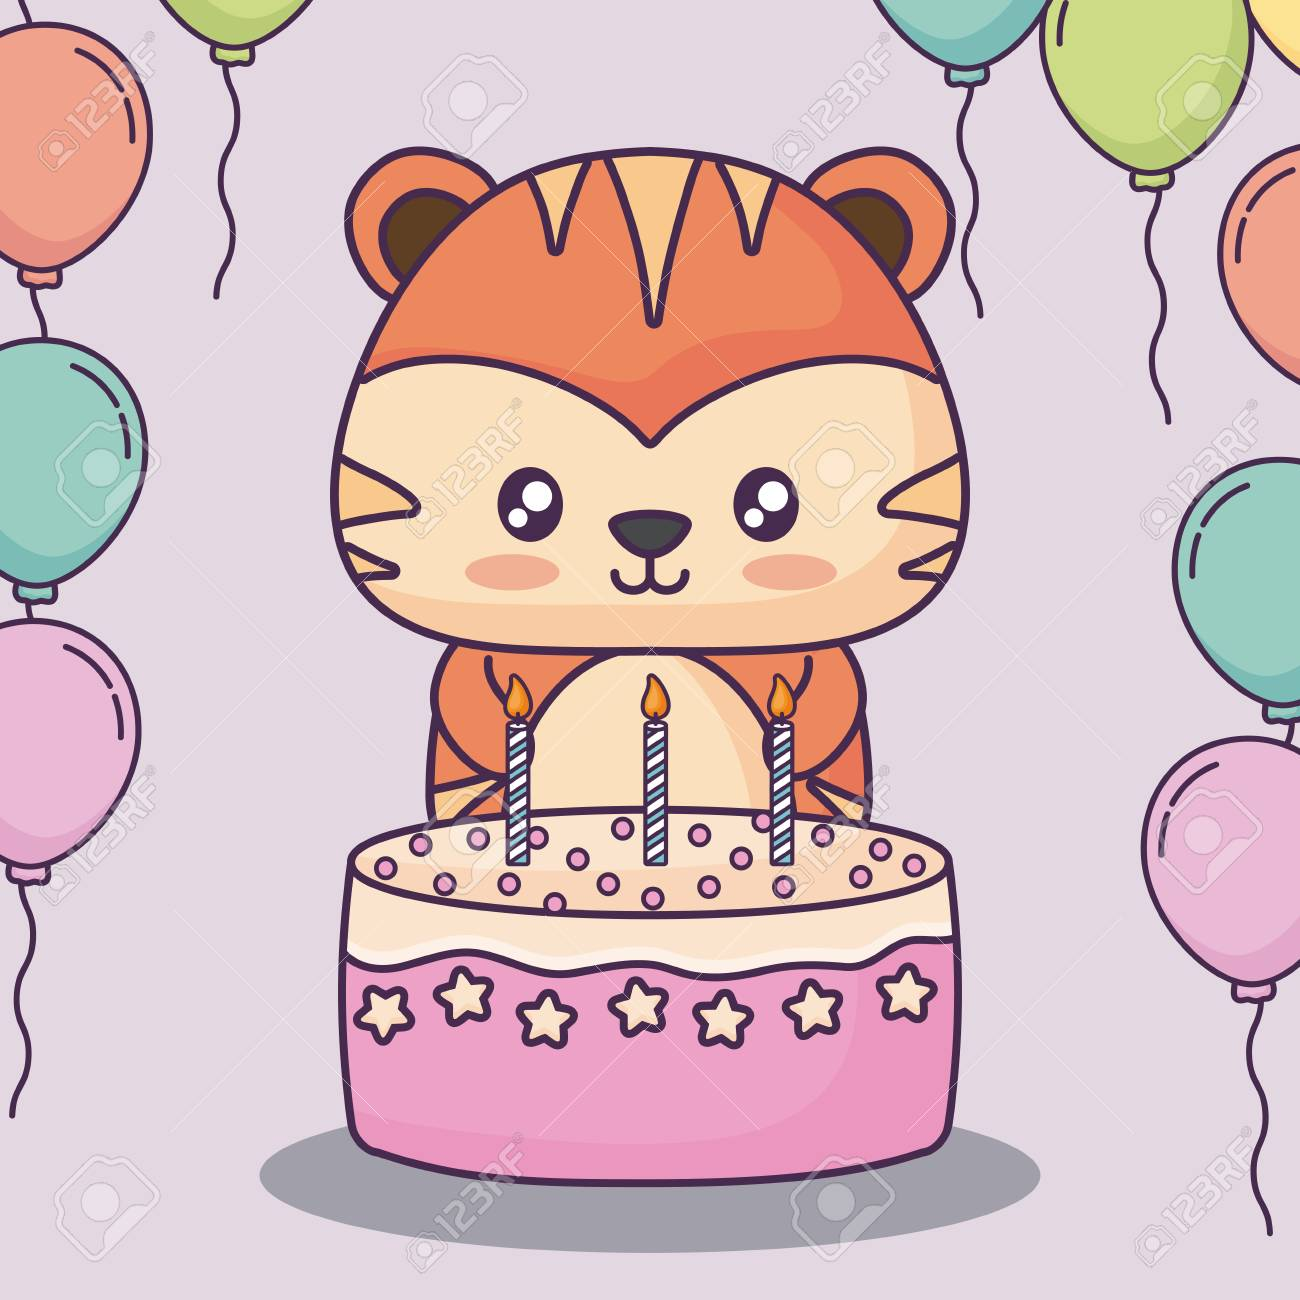 Outstanding Cute Tiger With Birthday Cake And Decorative Balloons Over Pink Personalised Birthday Cards Paralily Jamesorg